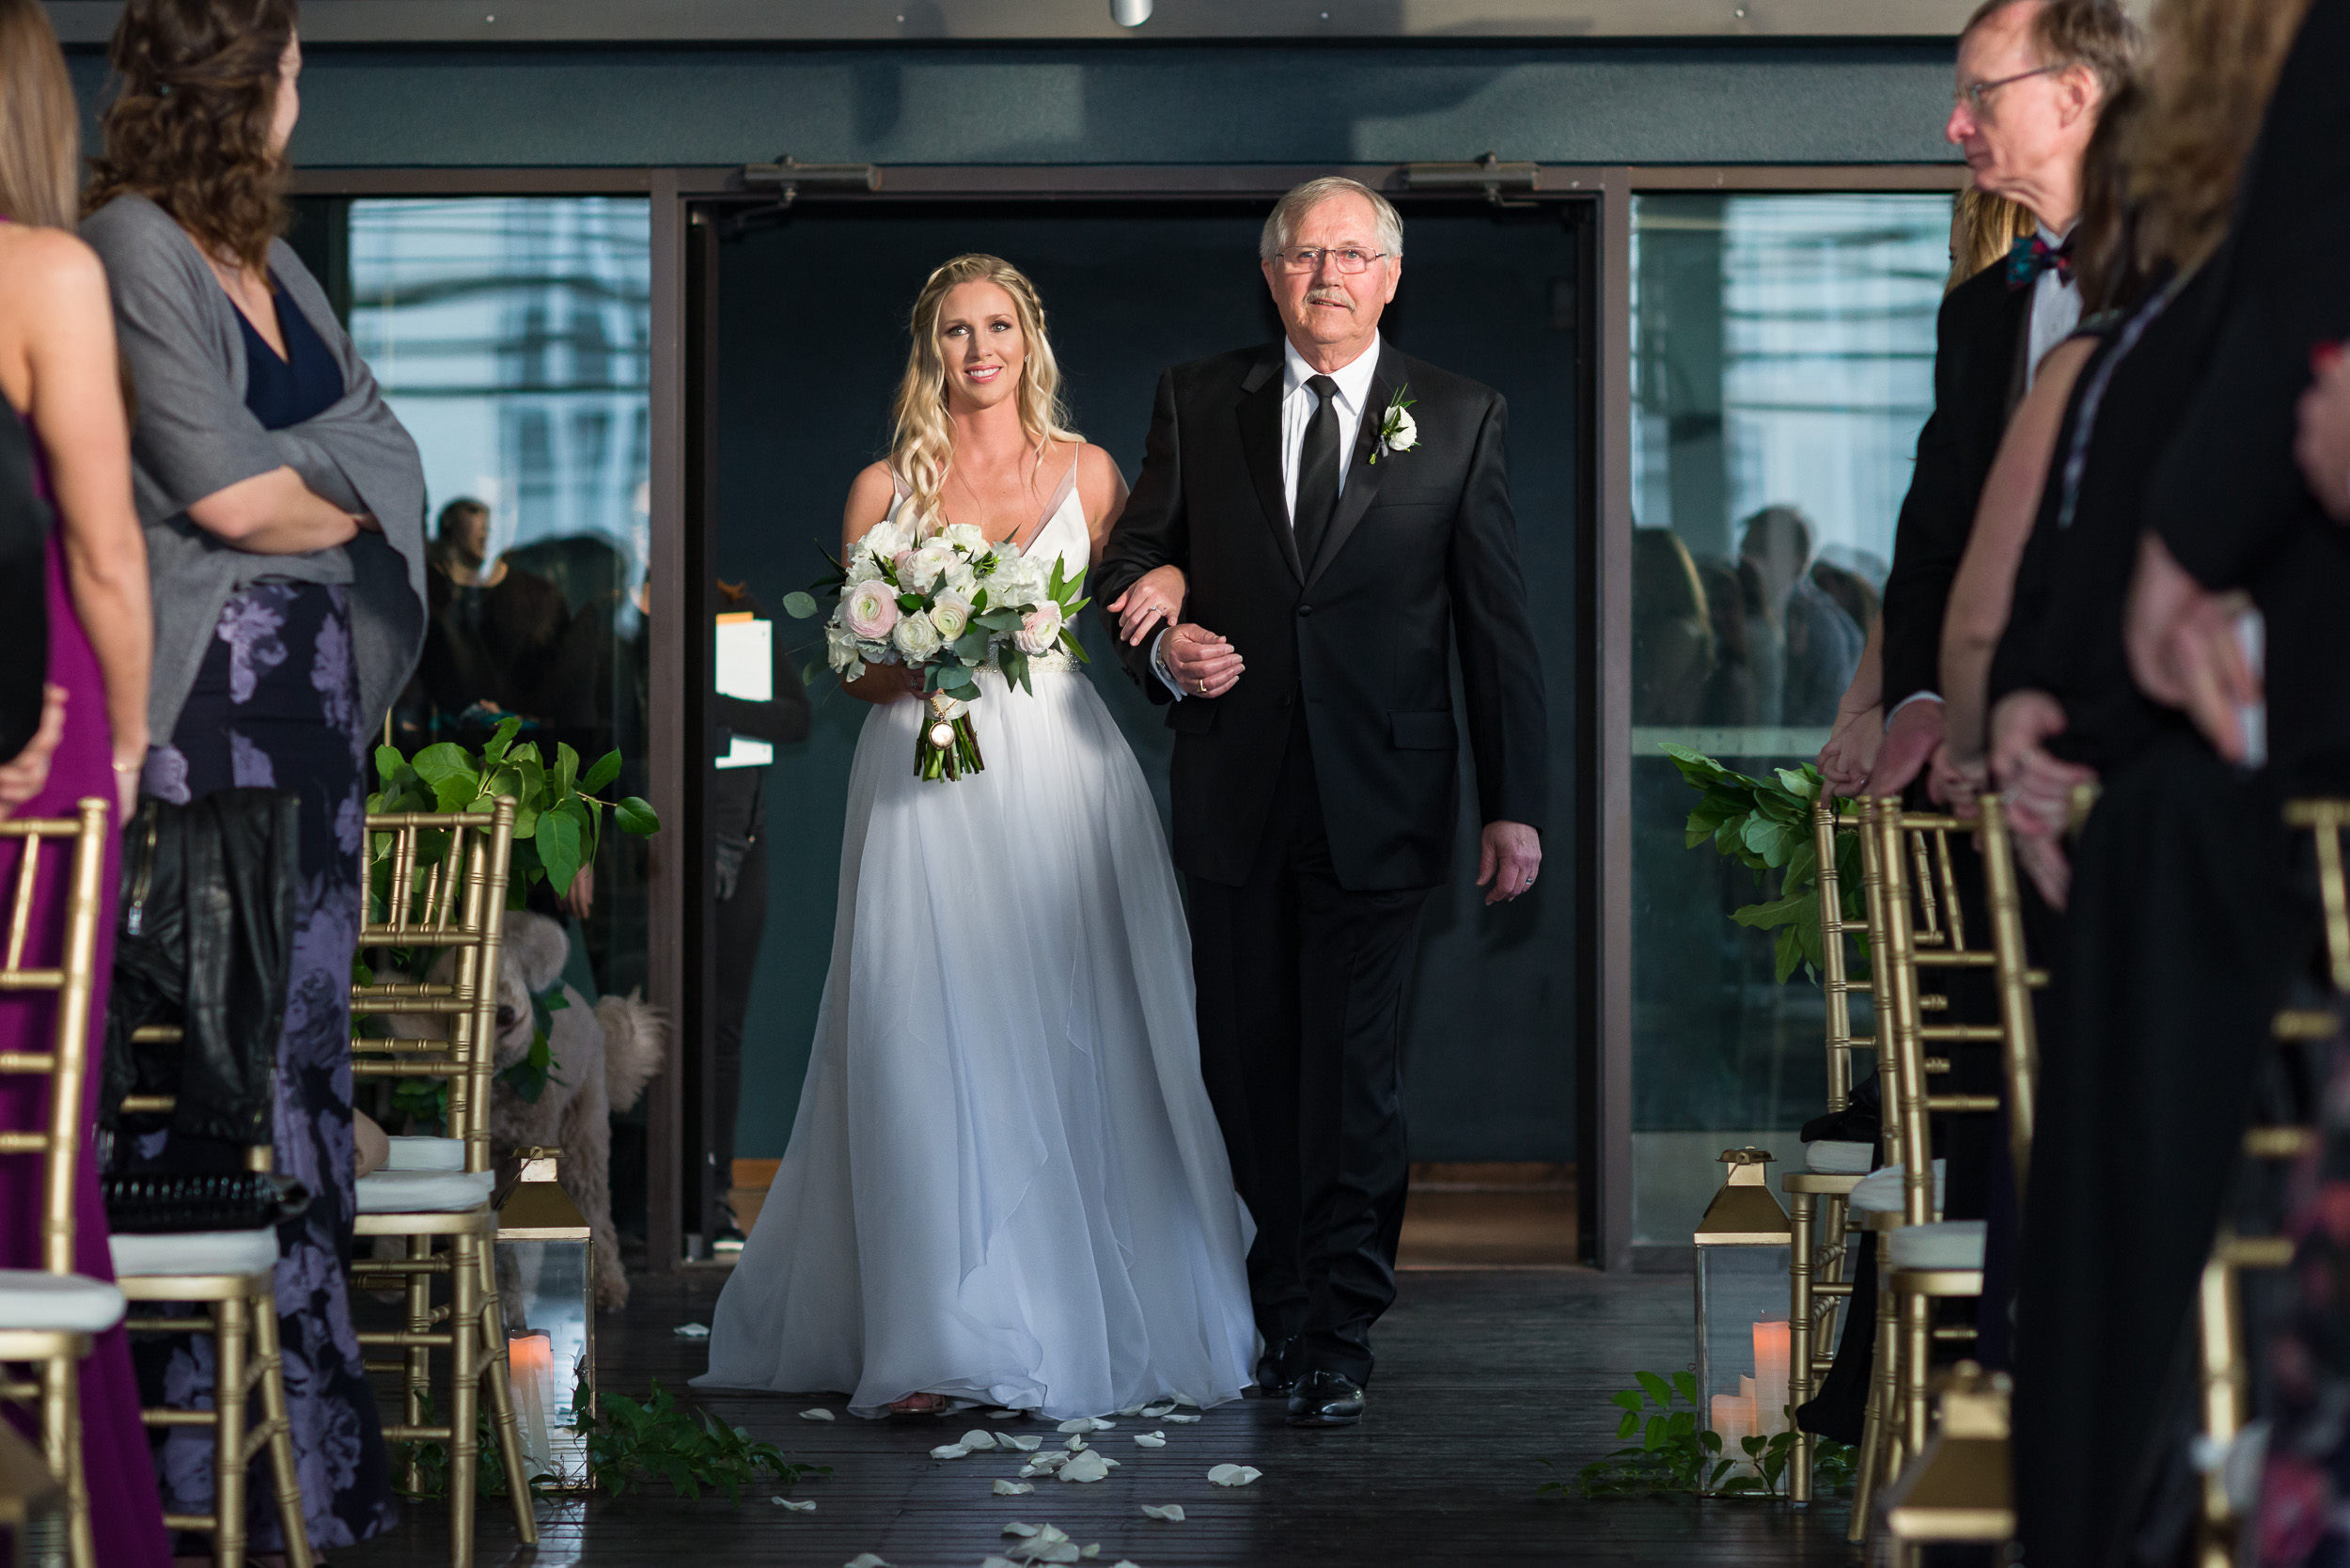 Austin-wedding-photographers-brazos-hall-downtown-bride-father-walking-aisle